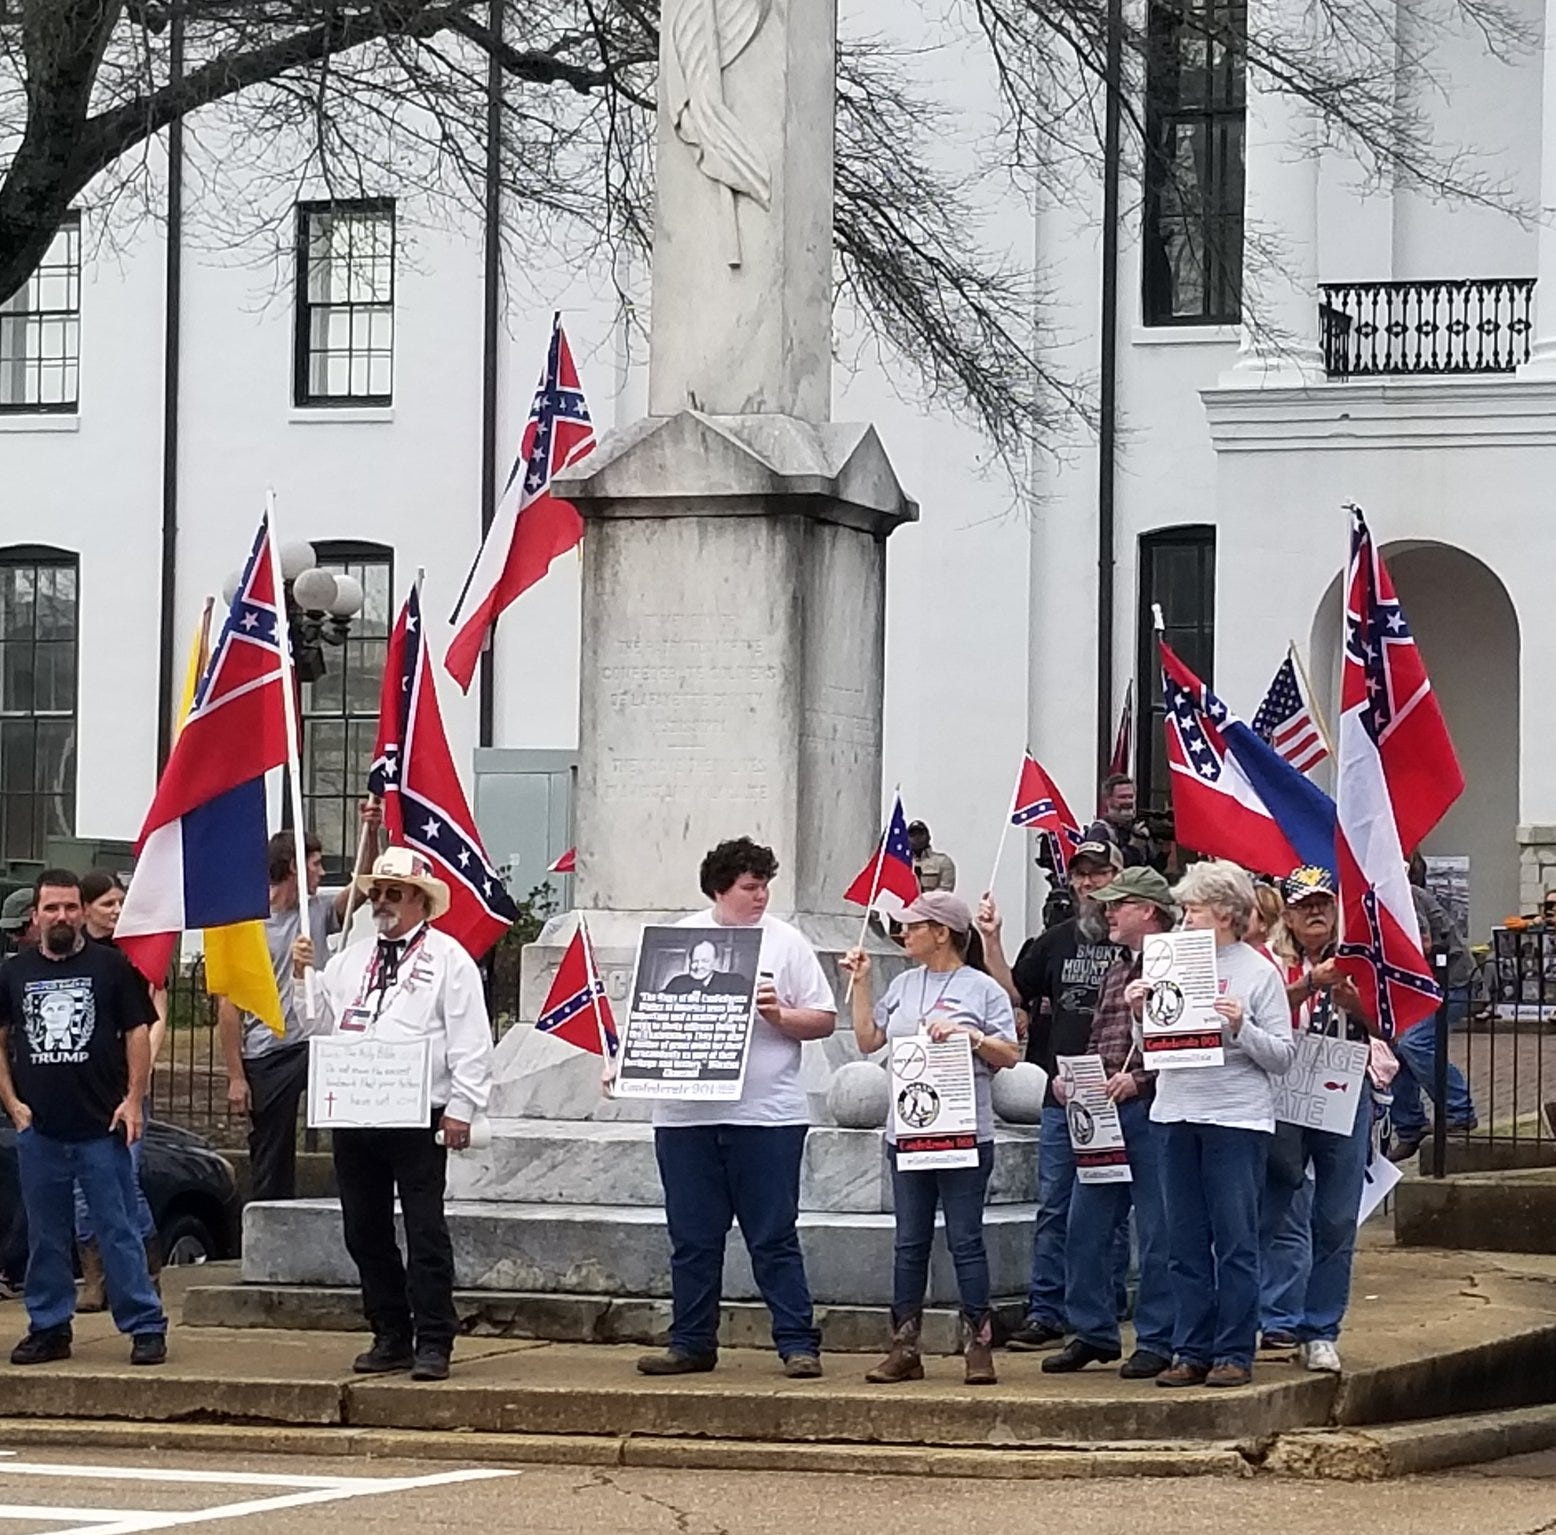 Scenes from pro-Confederate rally:  Group marches to Confederate memorial at Ole Miss